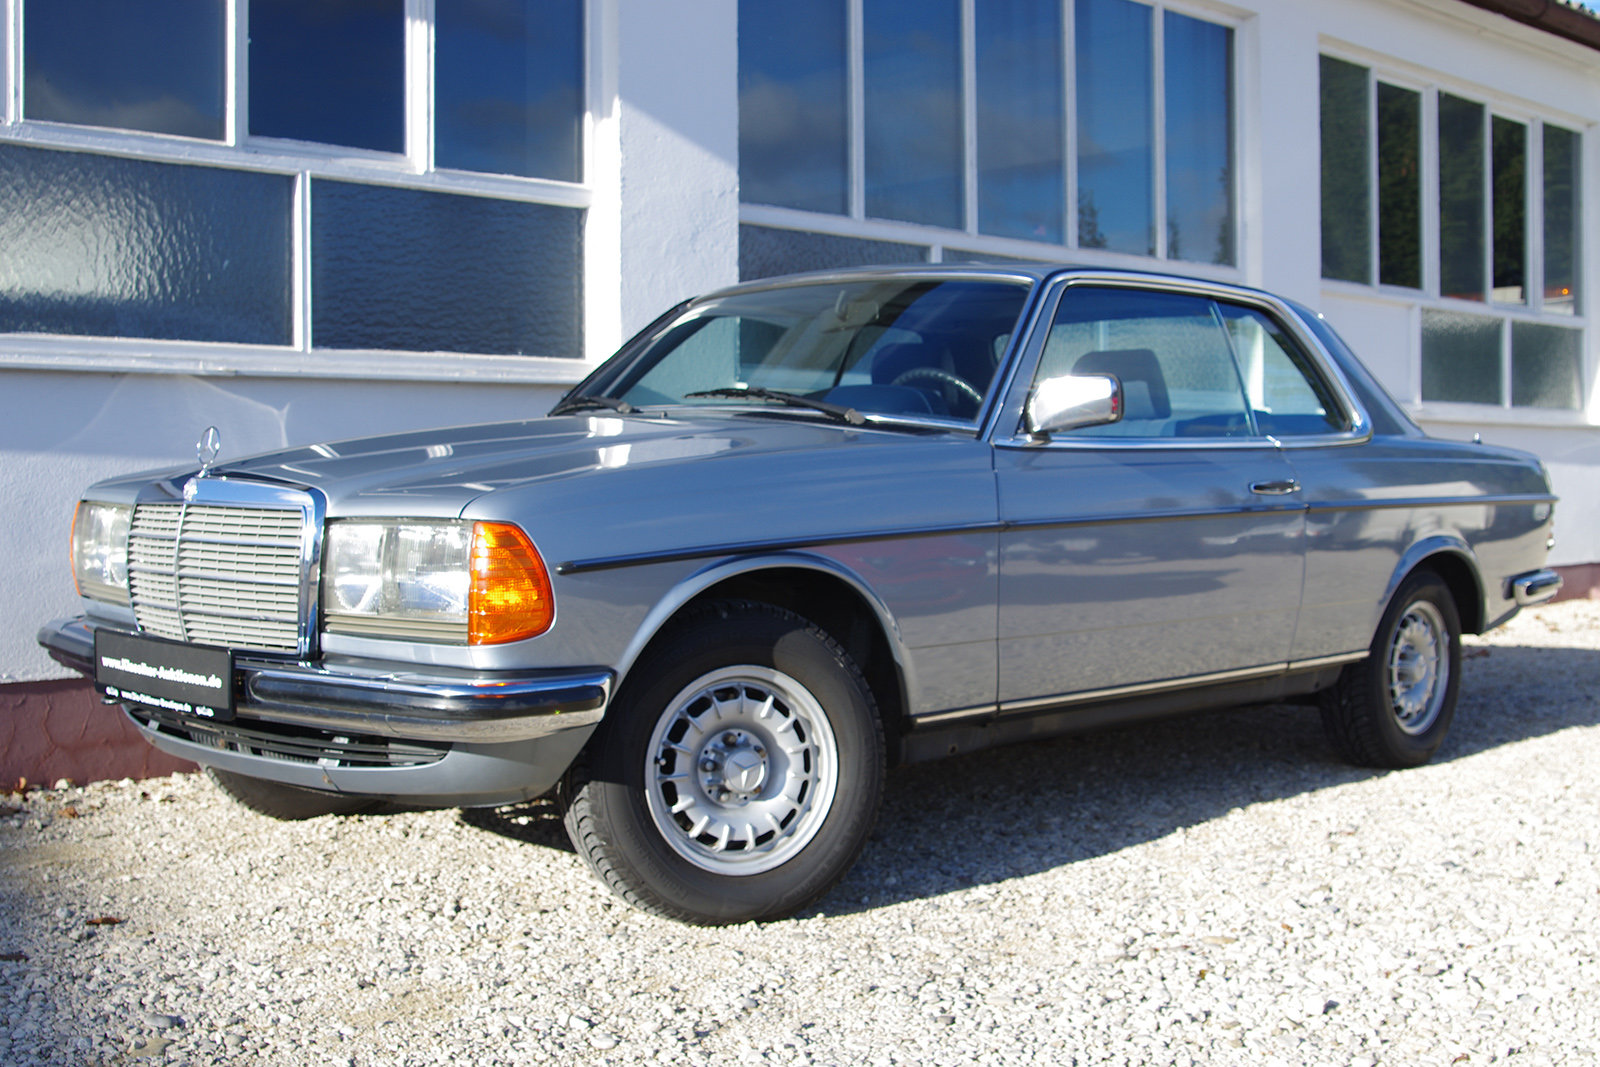 1983 Mercedes-Benz 230 CE - C123 - LHD - only 3 owners in 35 year For Sale (picture 1 of 6)